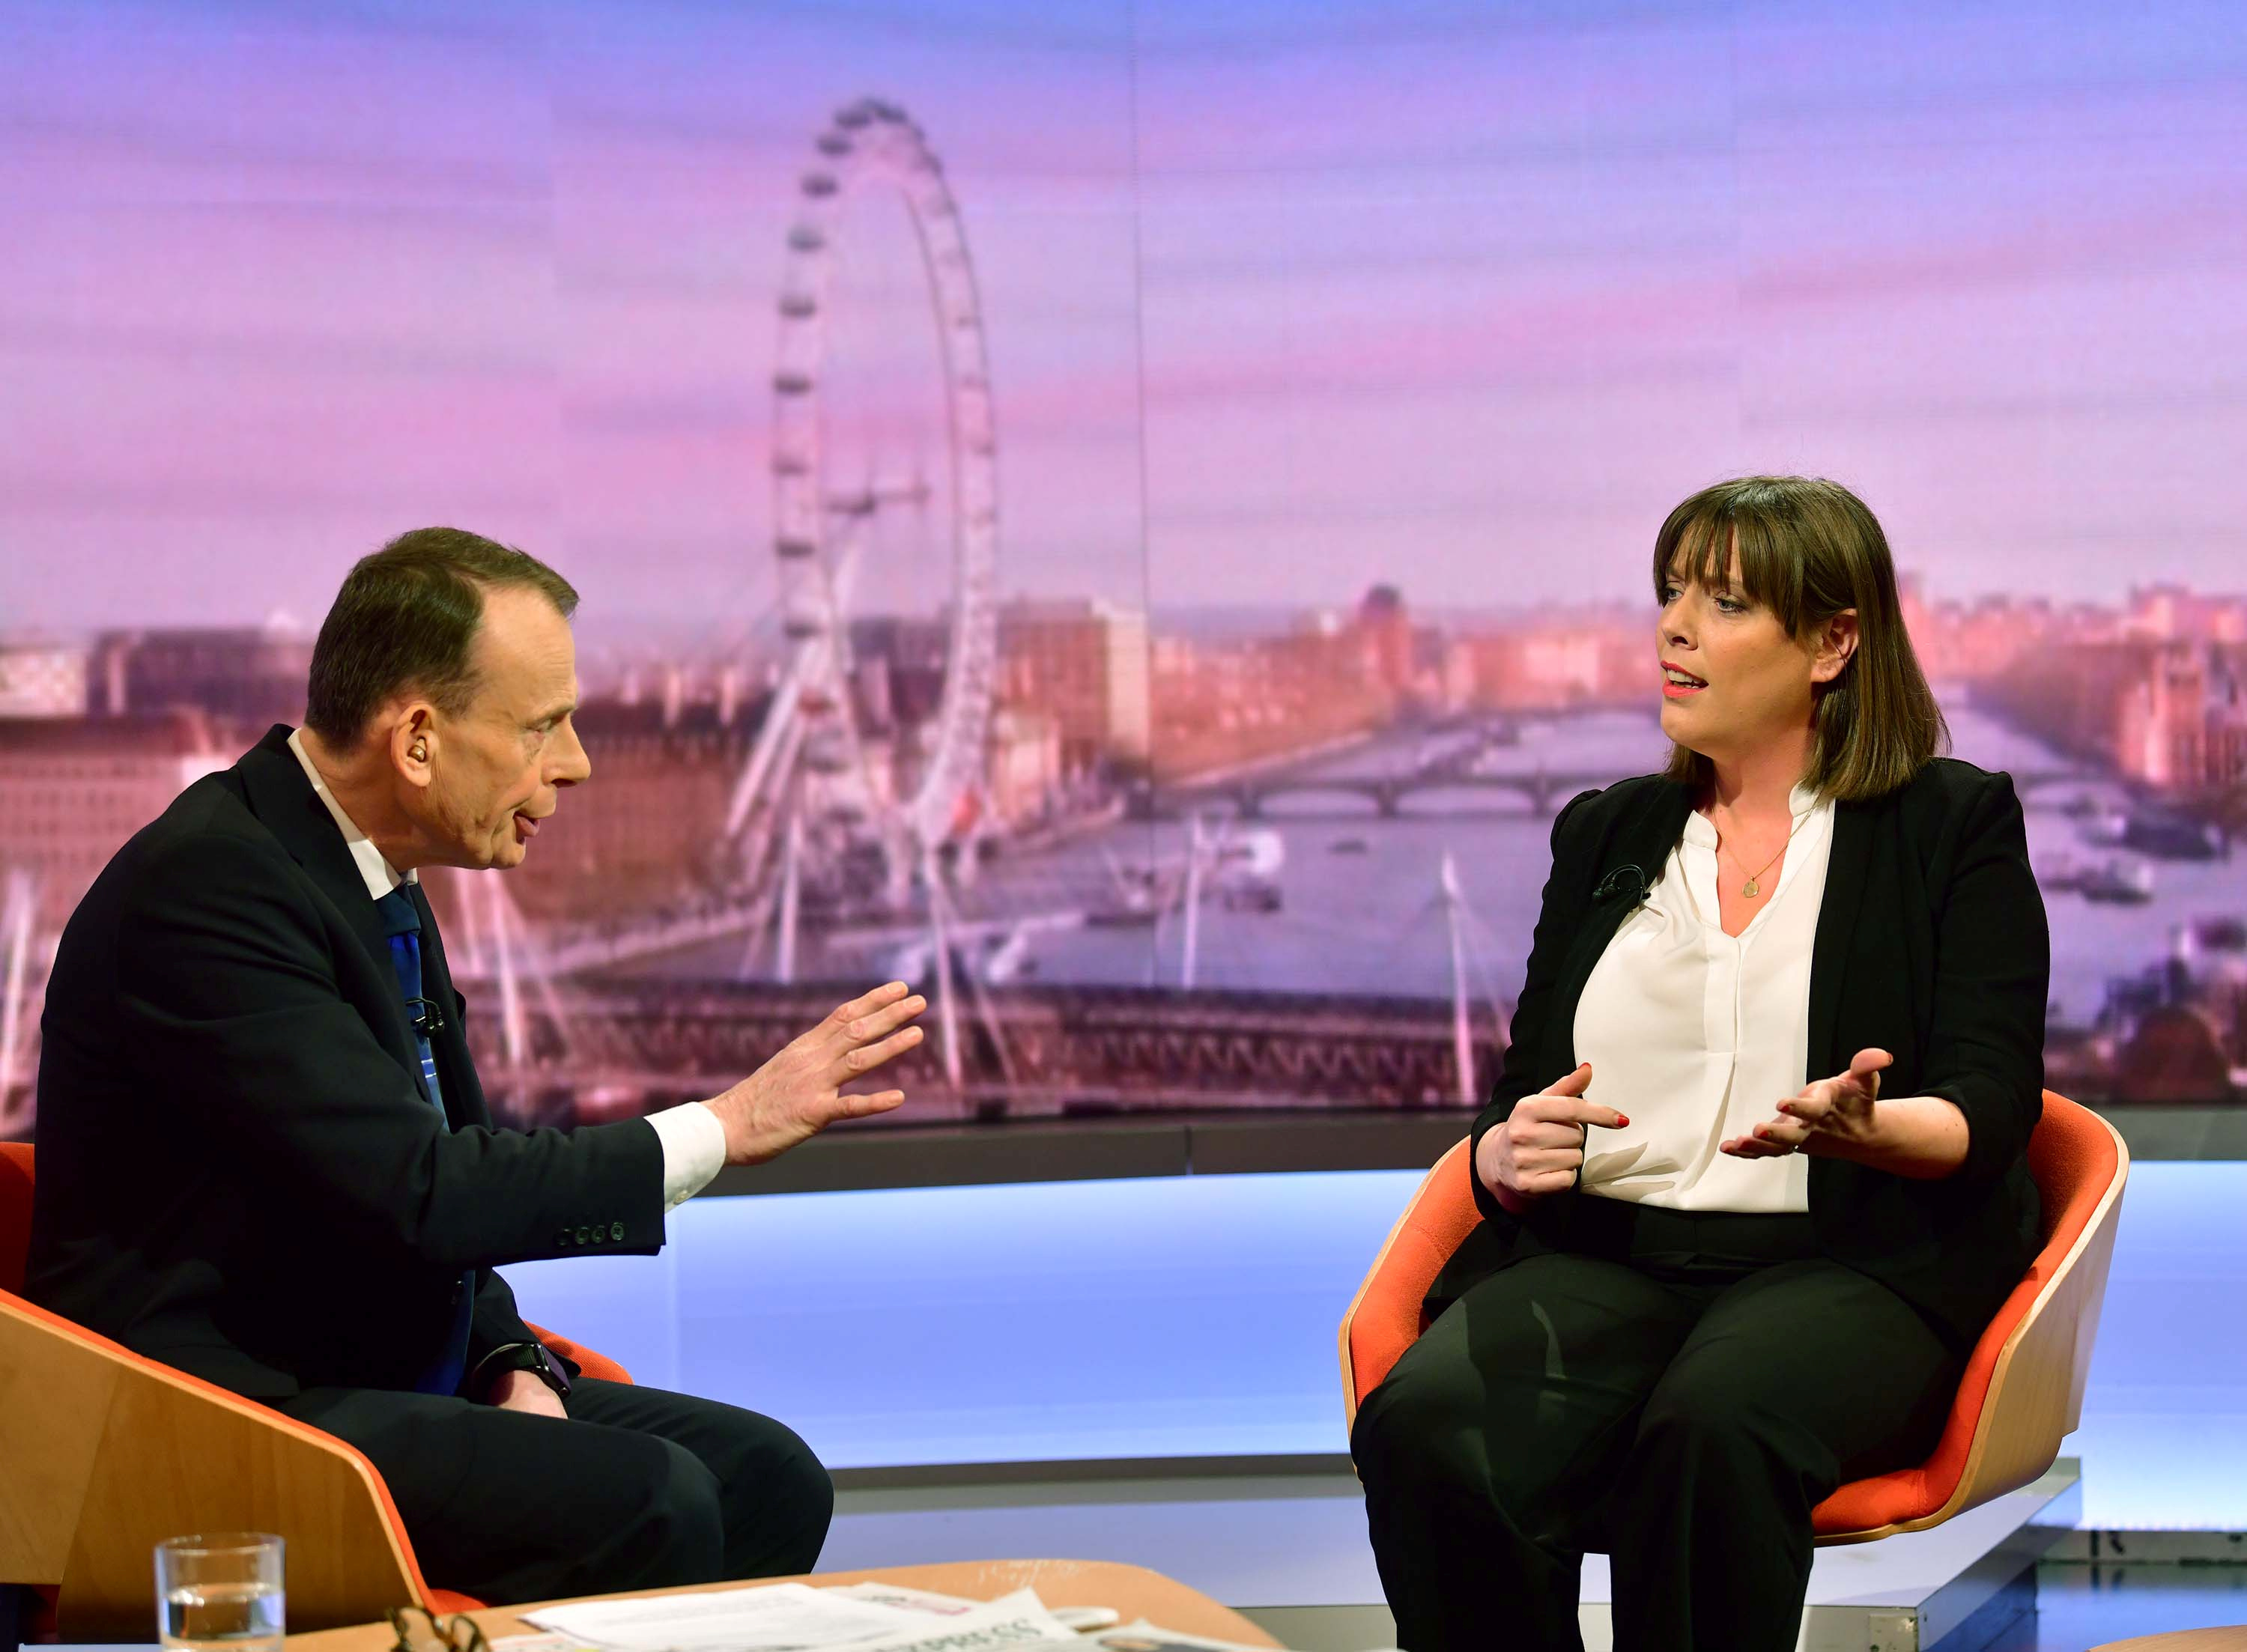 Britain's Labour MP Jess Phillips appears on BBC TV's The Andrew Marr Show in London, Britain January 5, 2020. Jeff Overs/BBC/Handout via REUTERS ATTENTION EDITORS - THIS IMAGE HAS BEEN SUPPLIED BY A THIRD PARTY. NO RESALES. NO ARCHIVES. NOT FOR USE MORE THAN 21 DAYS AFTER ISSUE.